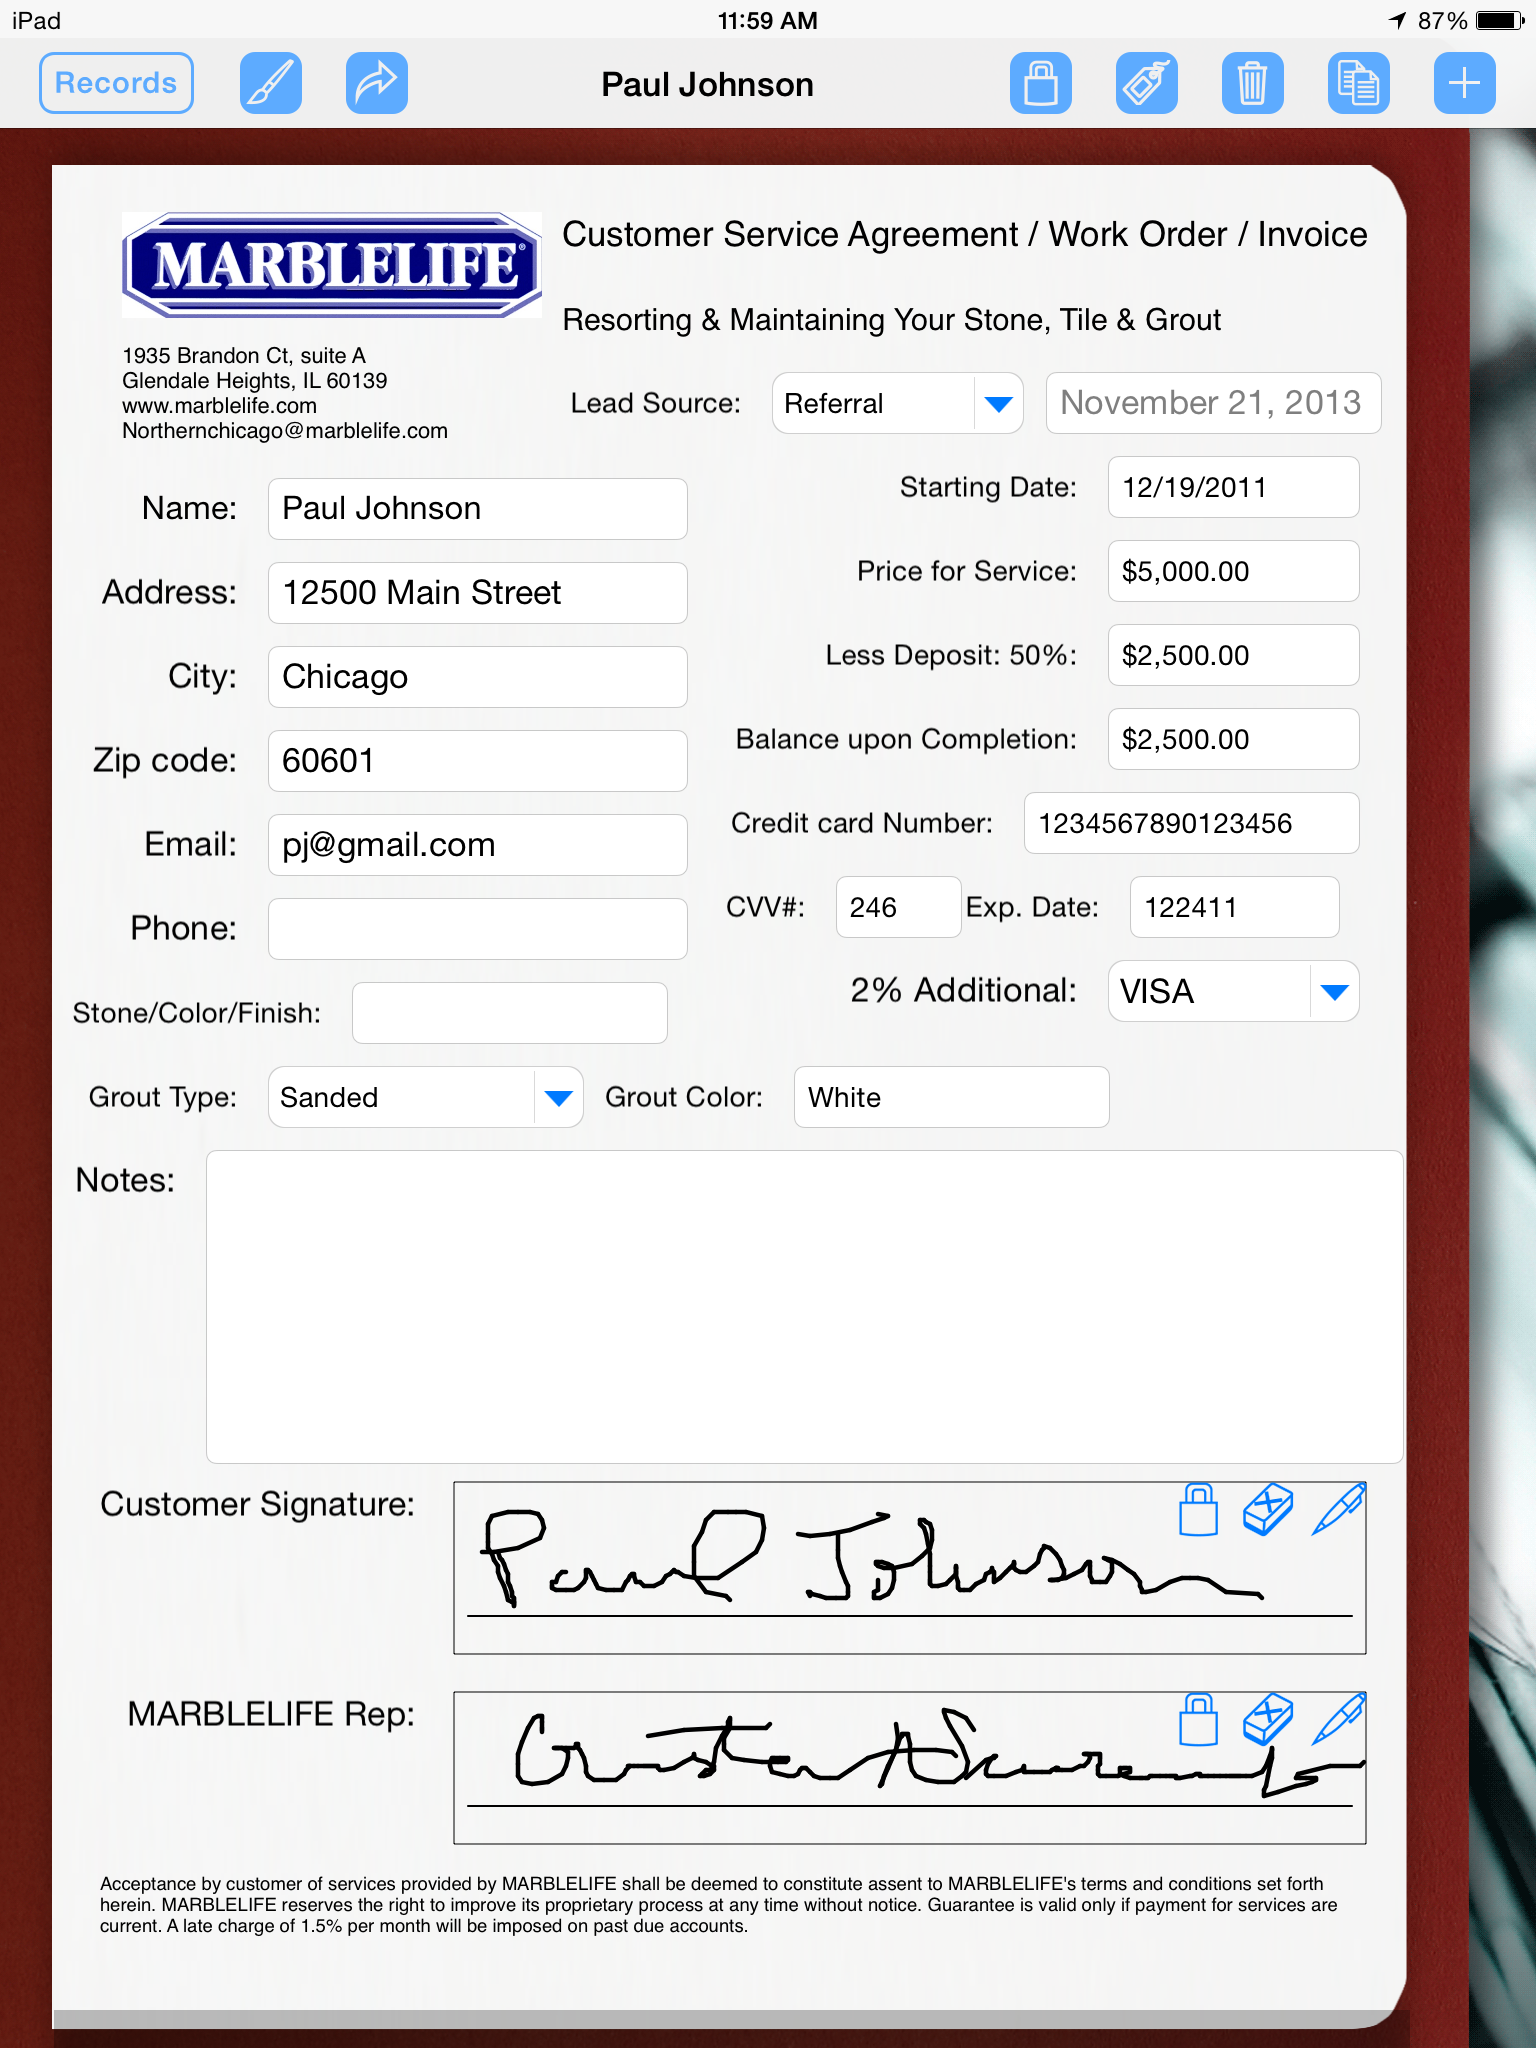 Service Technician Uses His iPad to Collect Signatures | Form ...